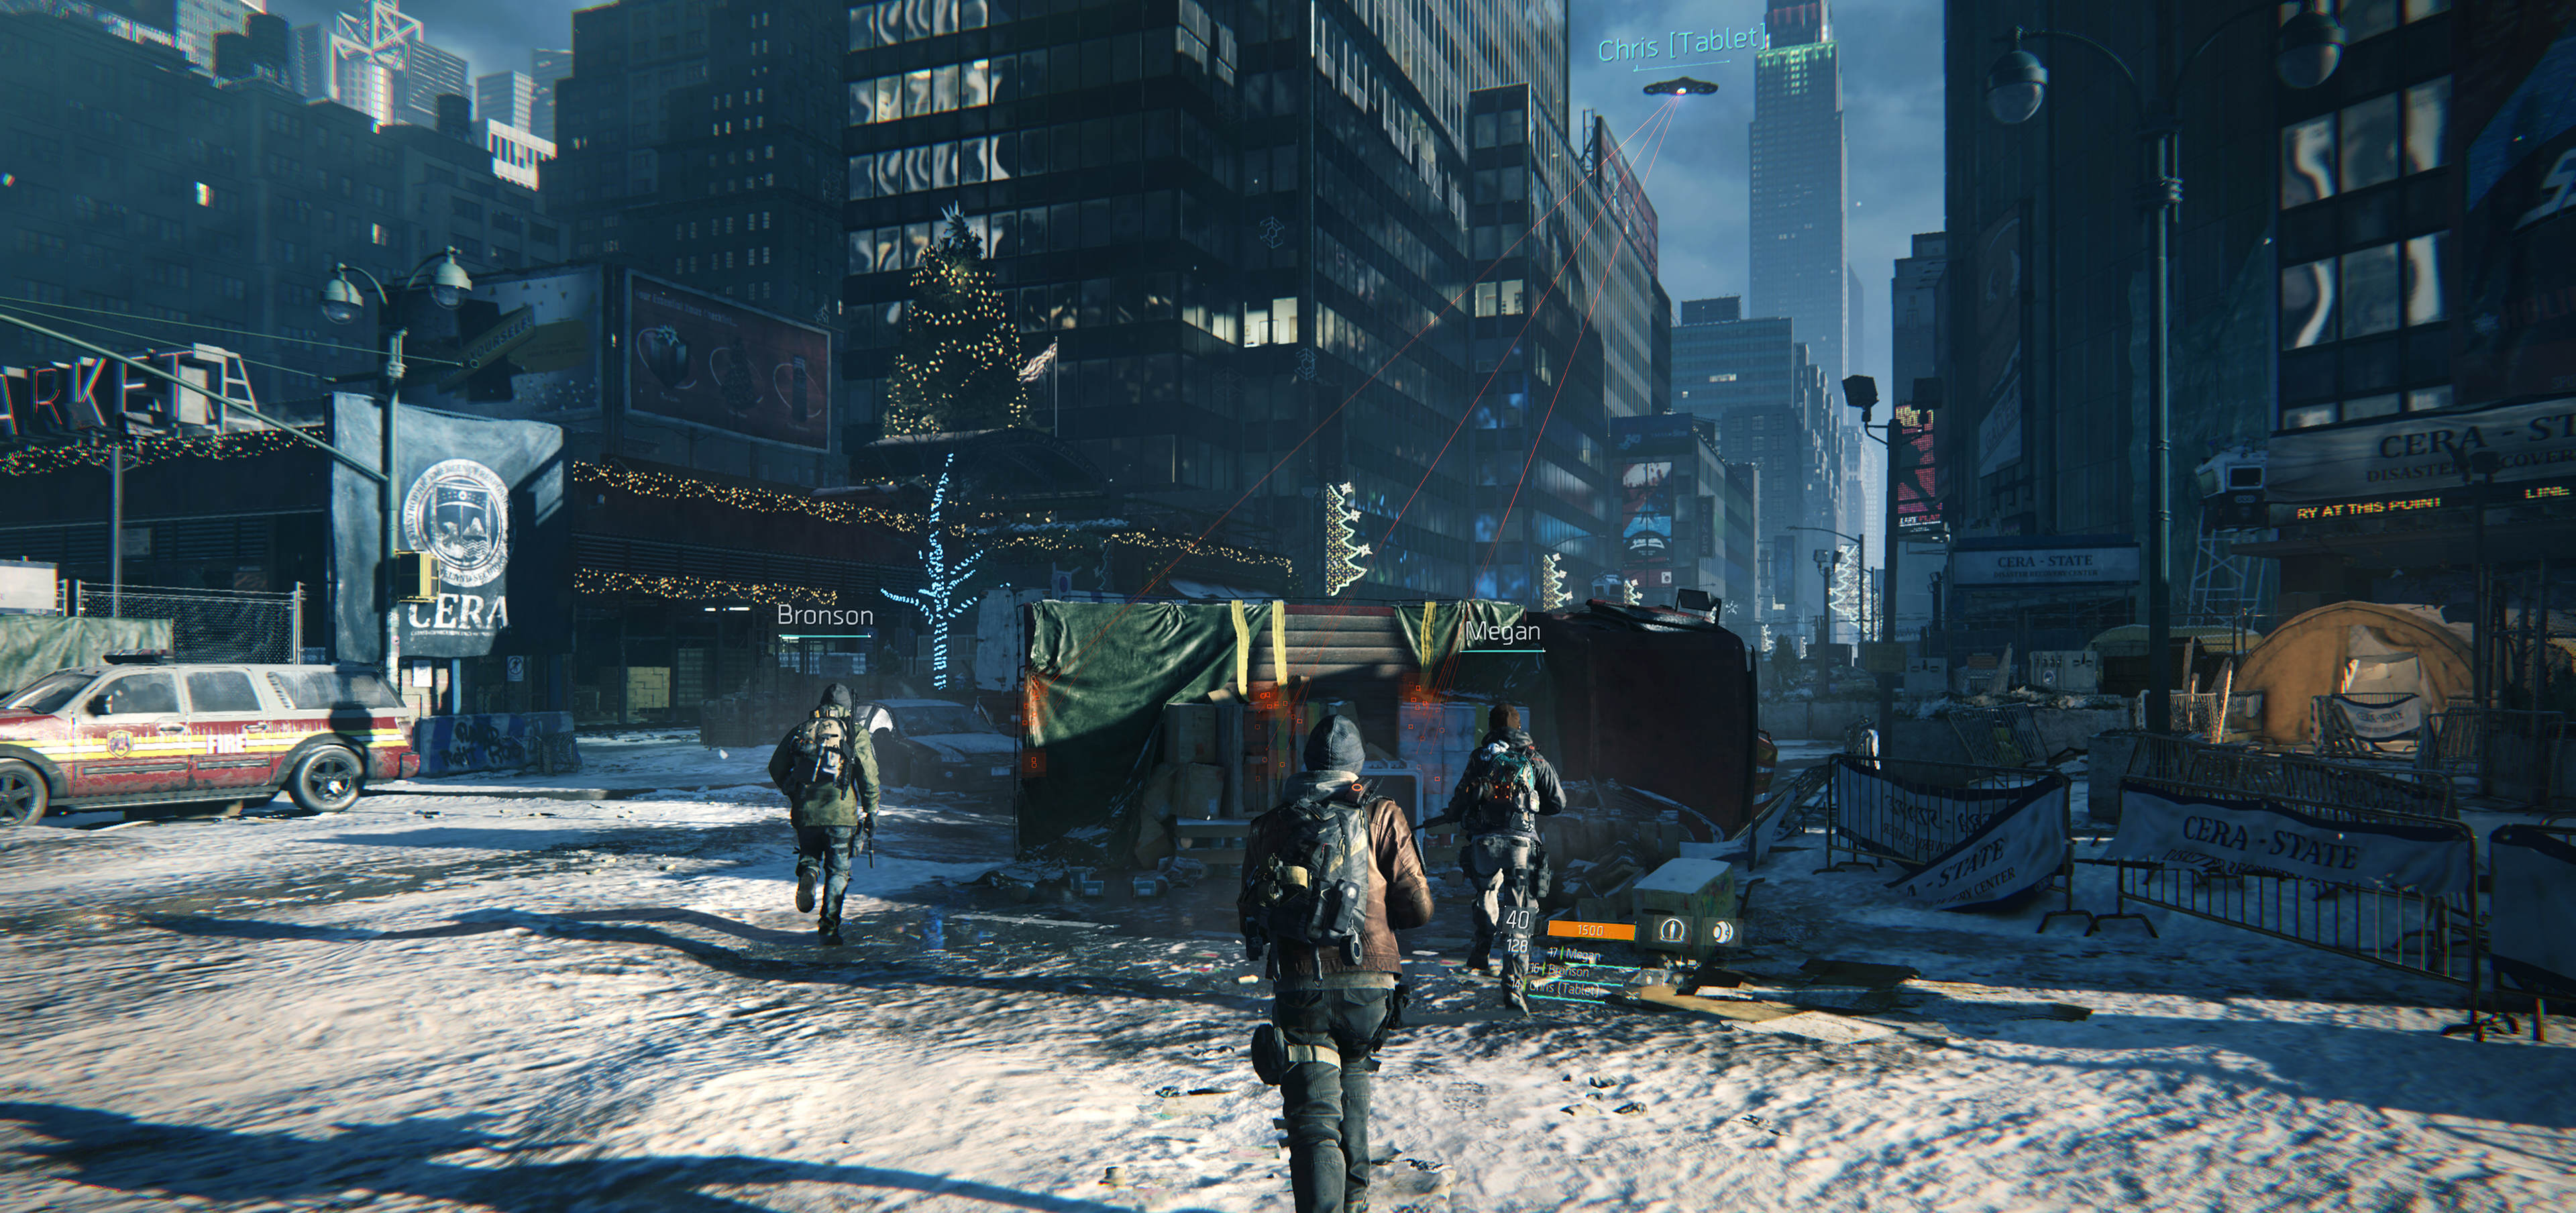 Ubisoft Have Revealed Their Plans For The Division Post Launch 2877203 td screen gc enemytagging 20140813 10amcet 1407886698